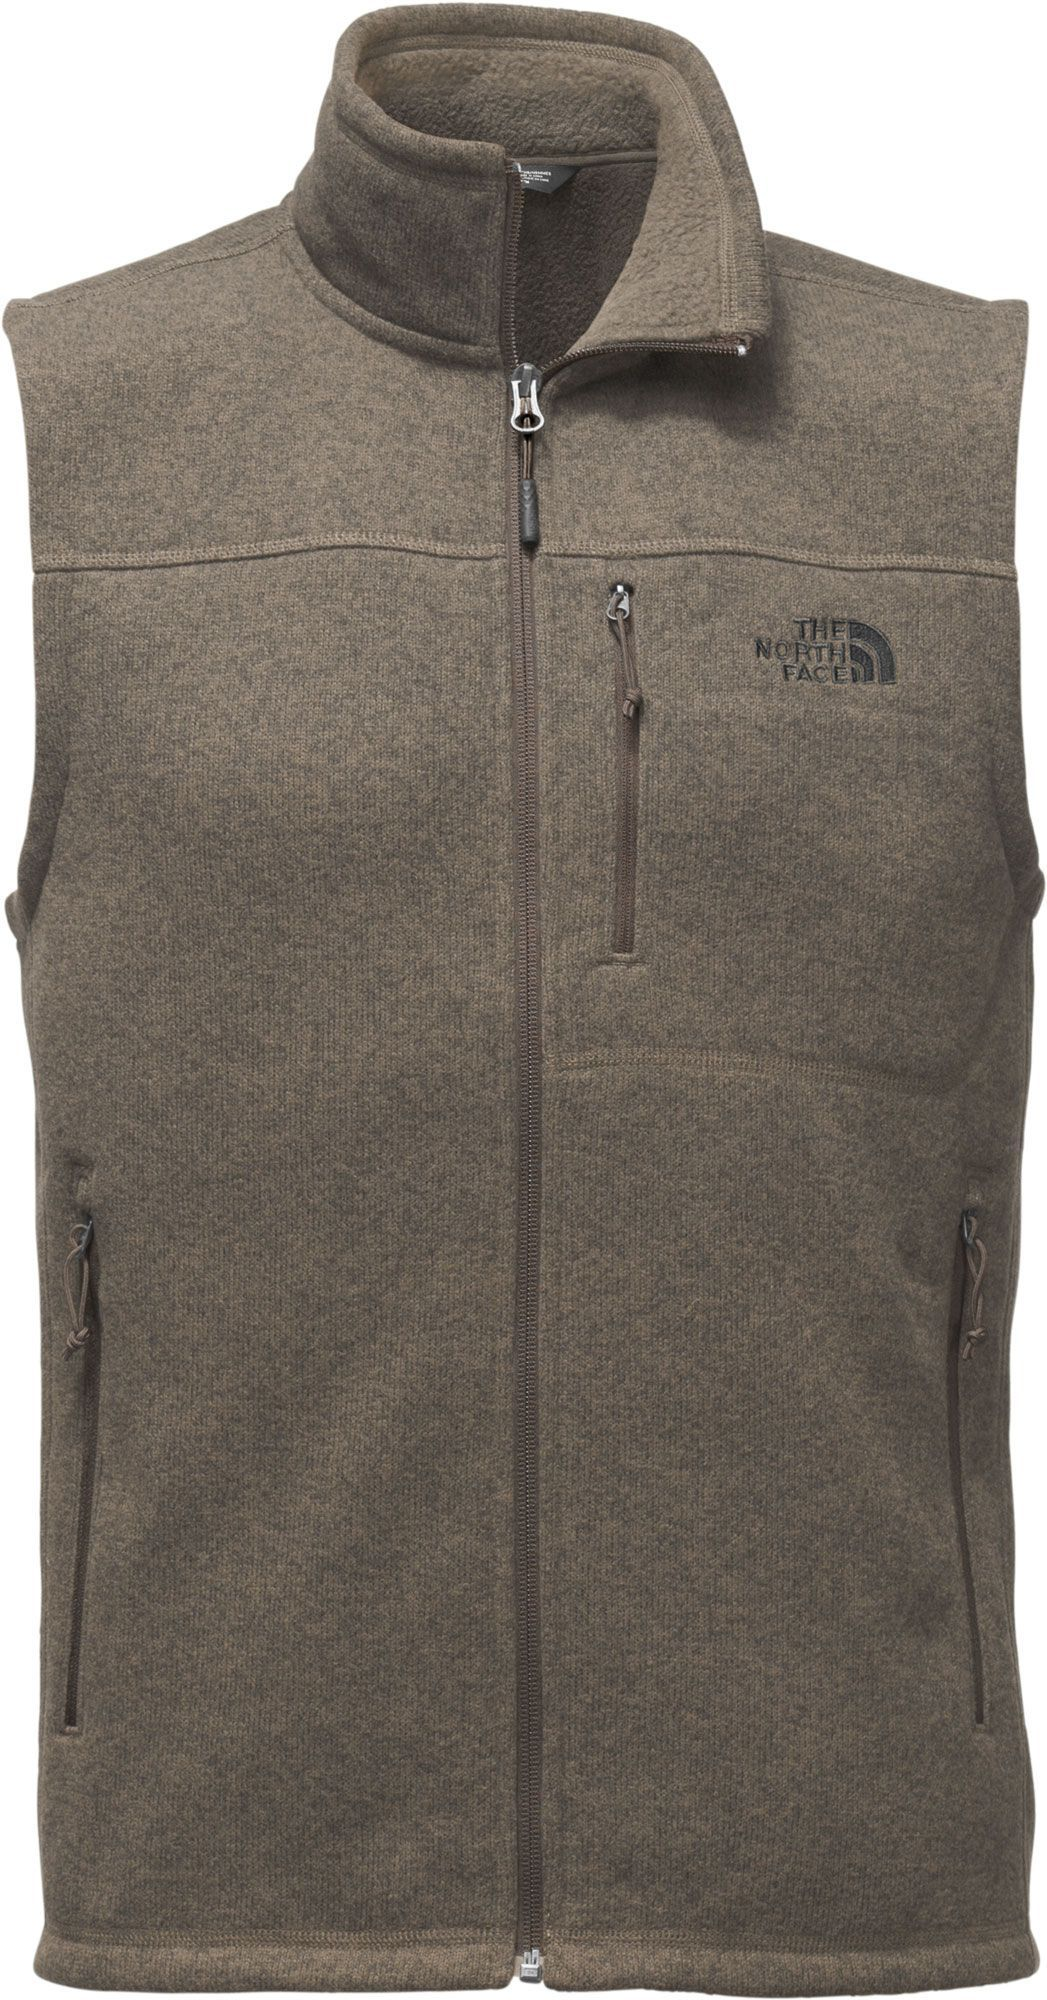 141b93ba16ba The North Face Men s Gordon Lyons Fleece Vest